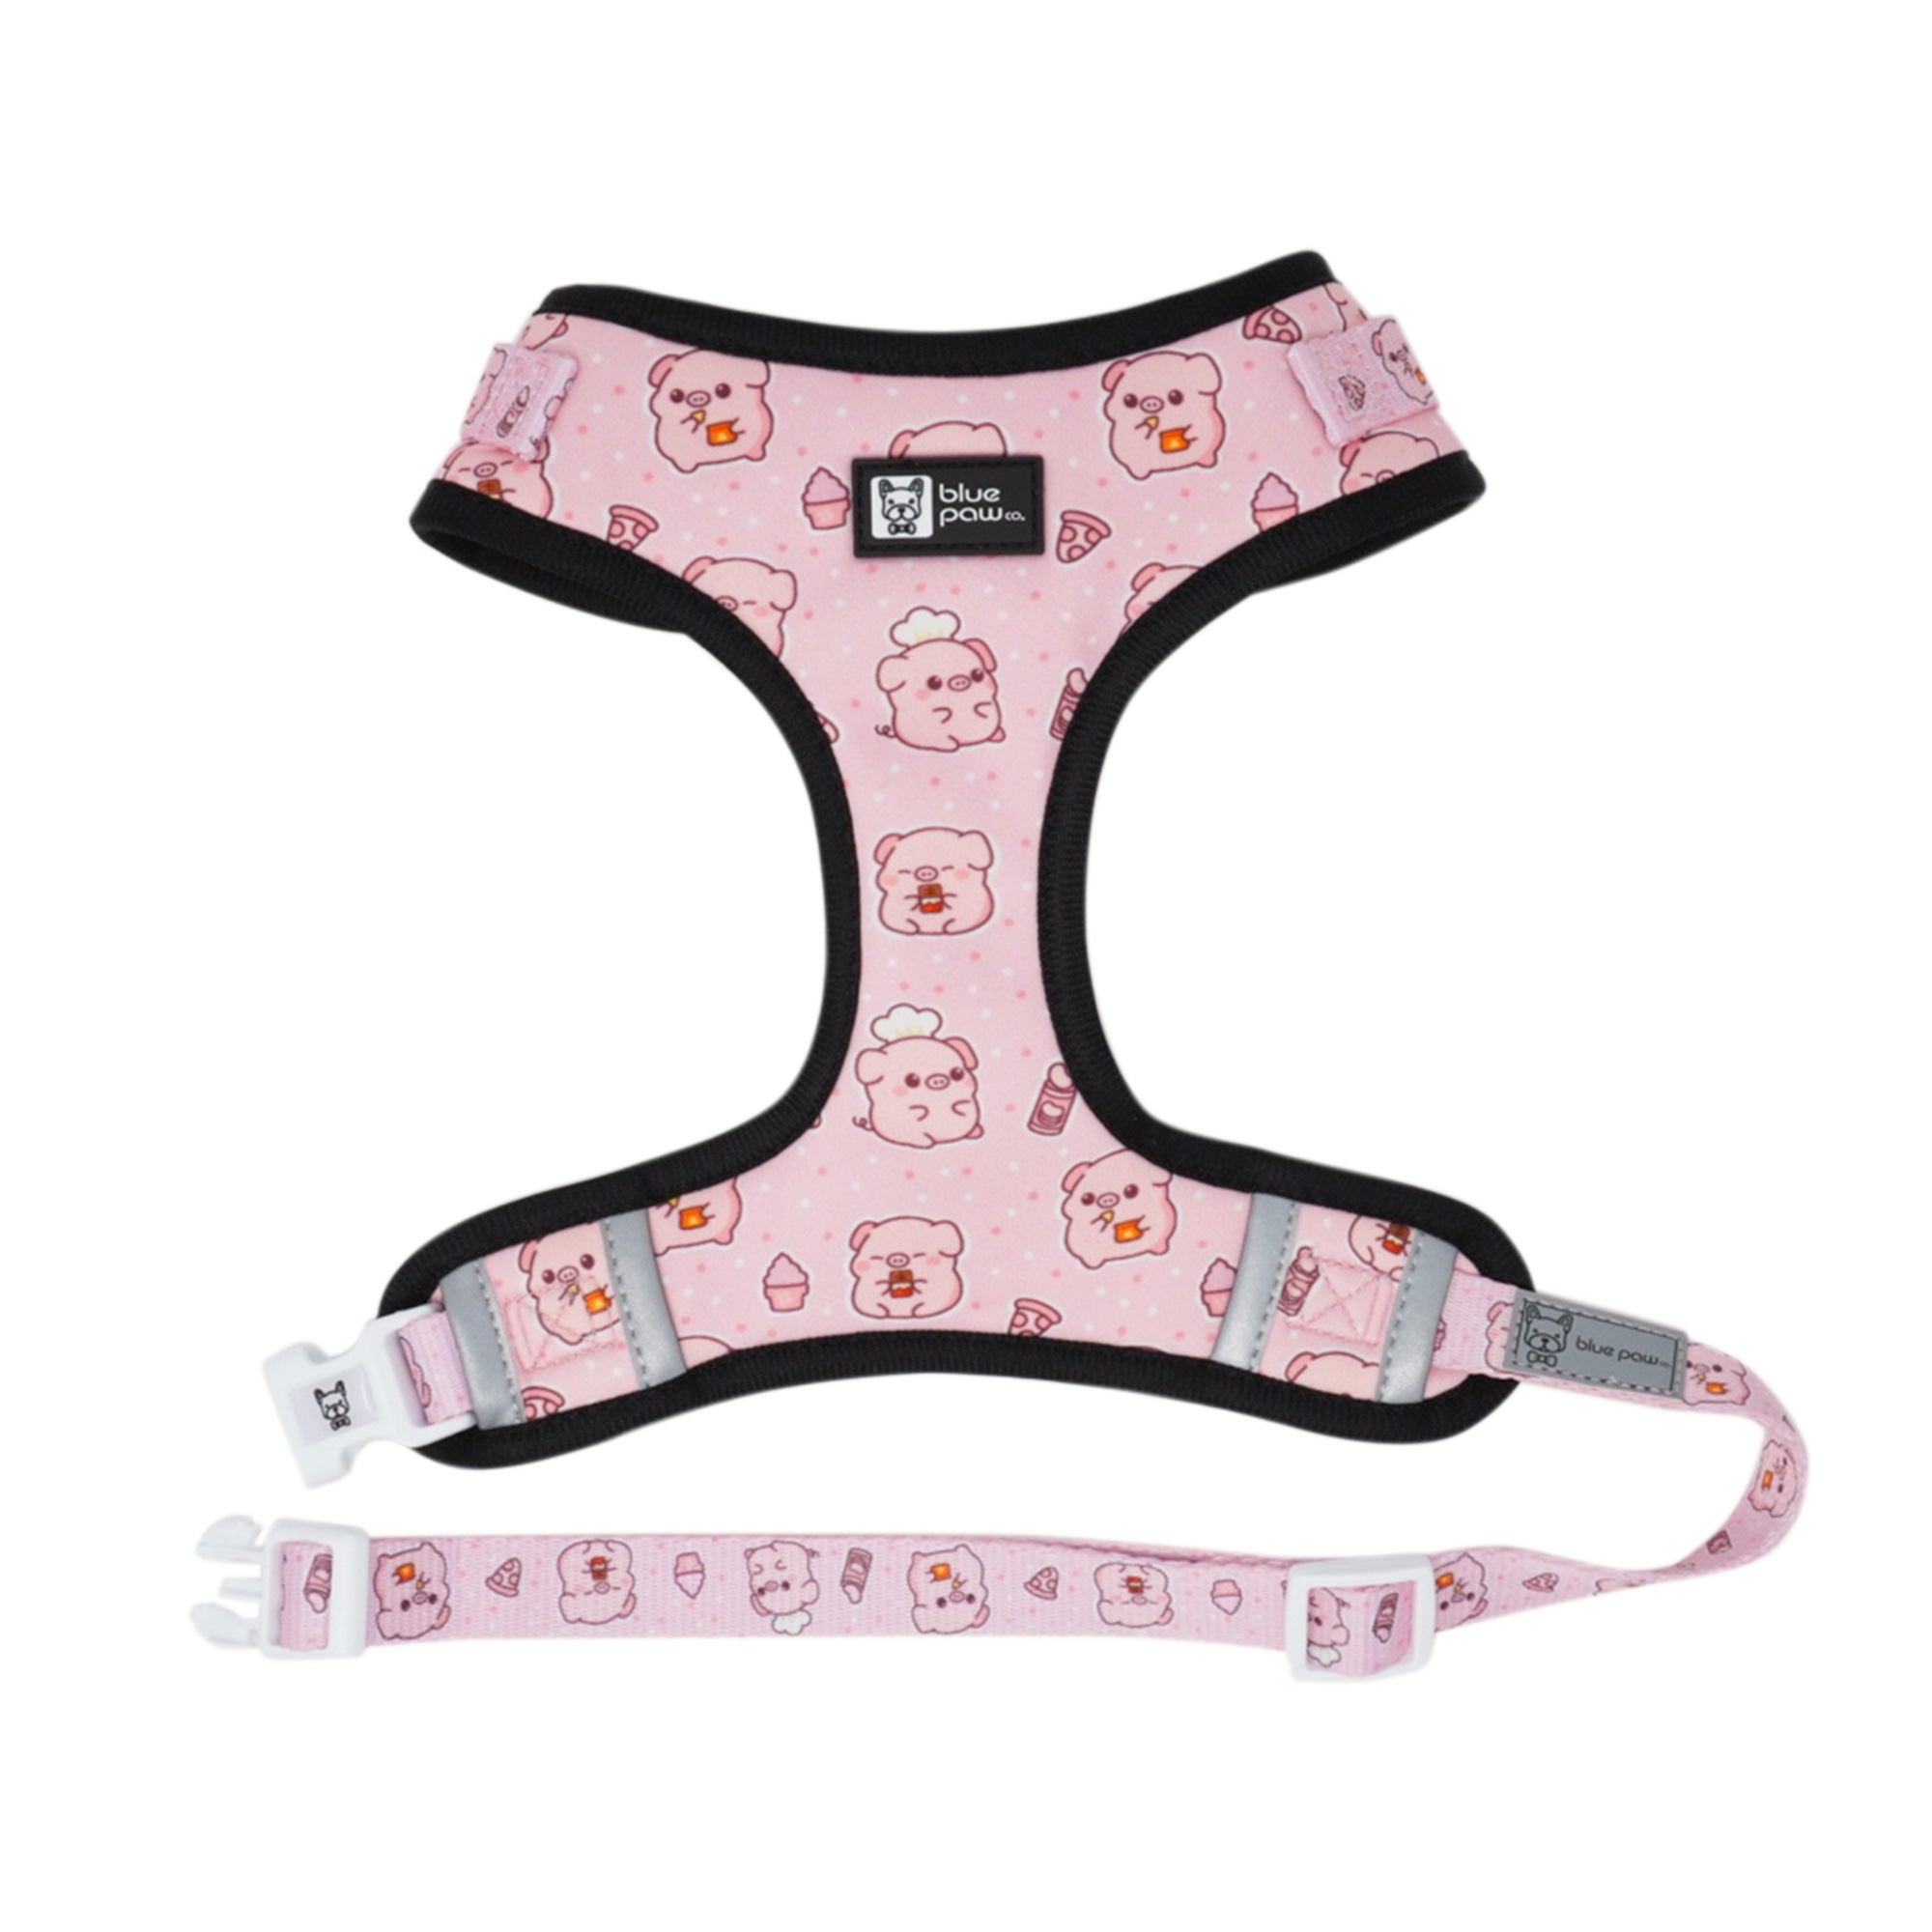 Adjustable Dog Harness - Piggin' Out